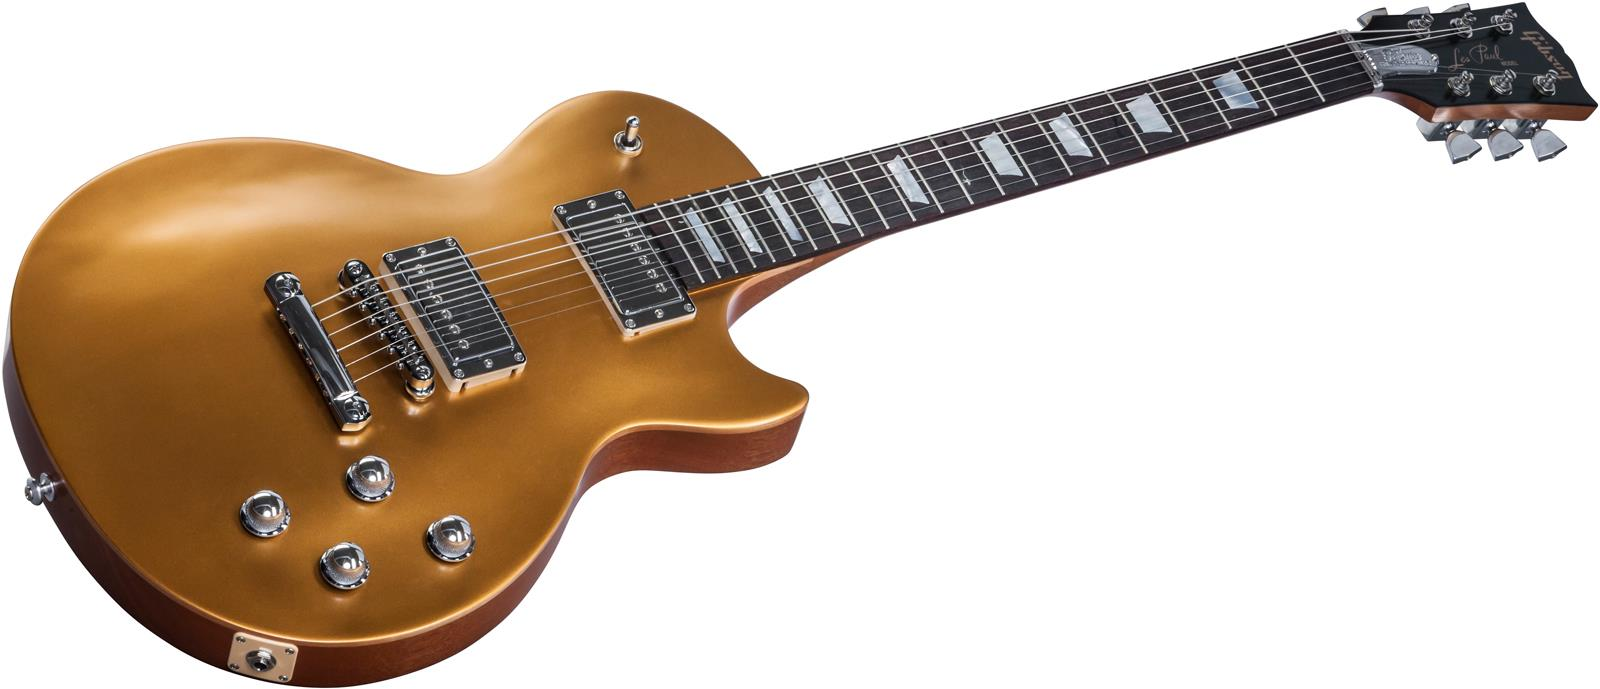 gibson 2017 les paul tribute hp satin gold top keymusic. Black Bedroom Furniture Sets. Home Design Ideas